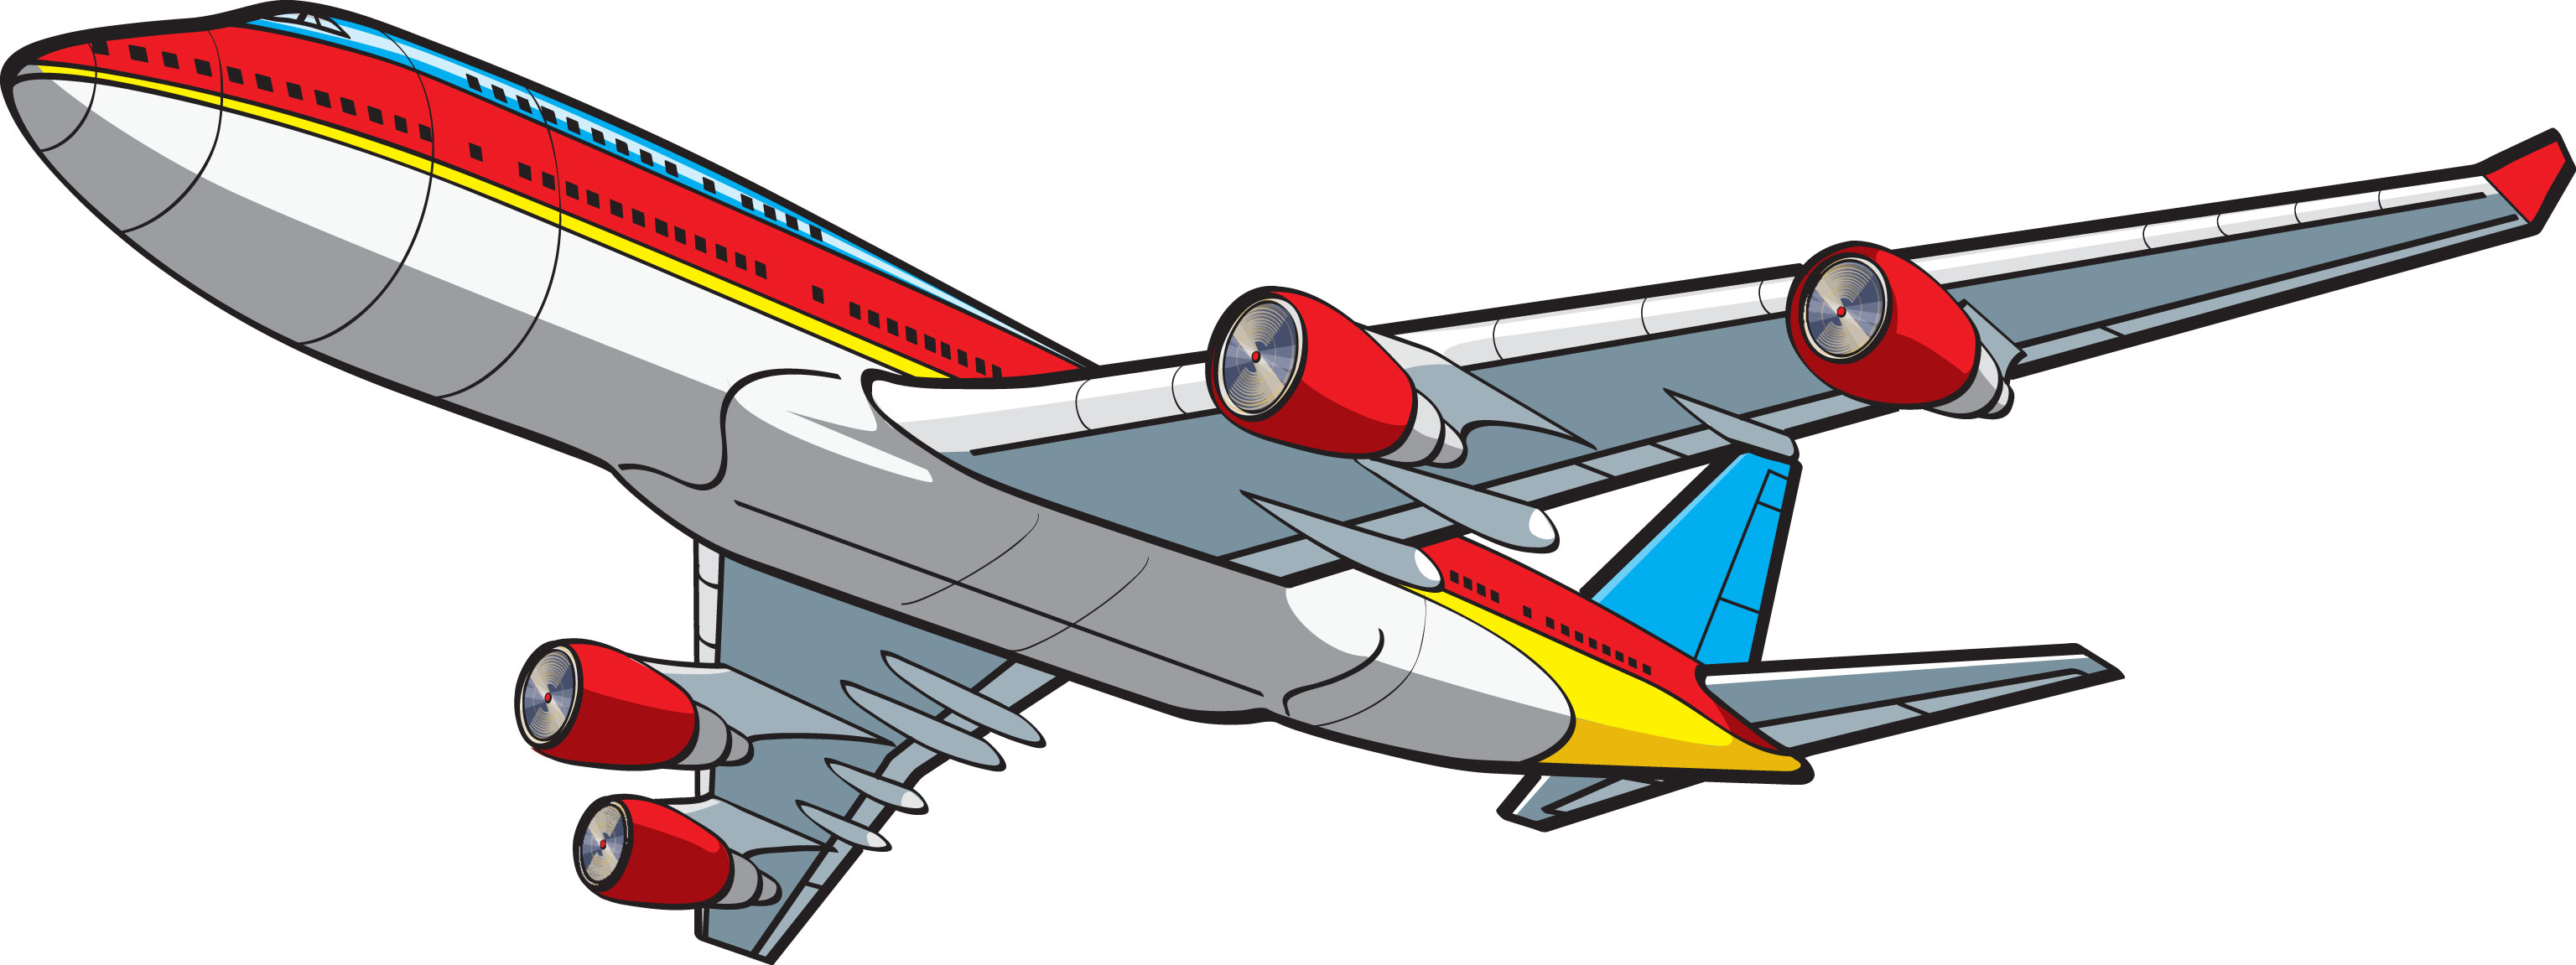 Airplane clipart facing left image royalty free Planes Clipart | Free download best Planes Clipart on ClipArtMag.com image royalty free